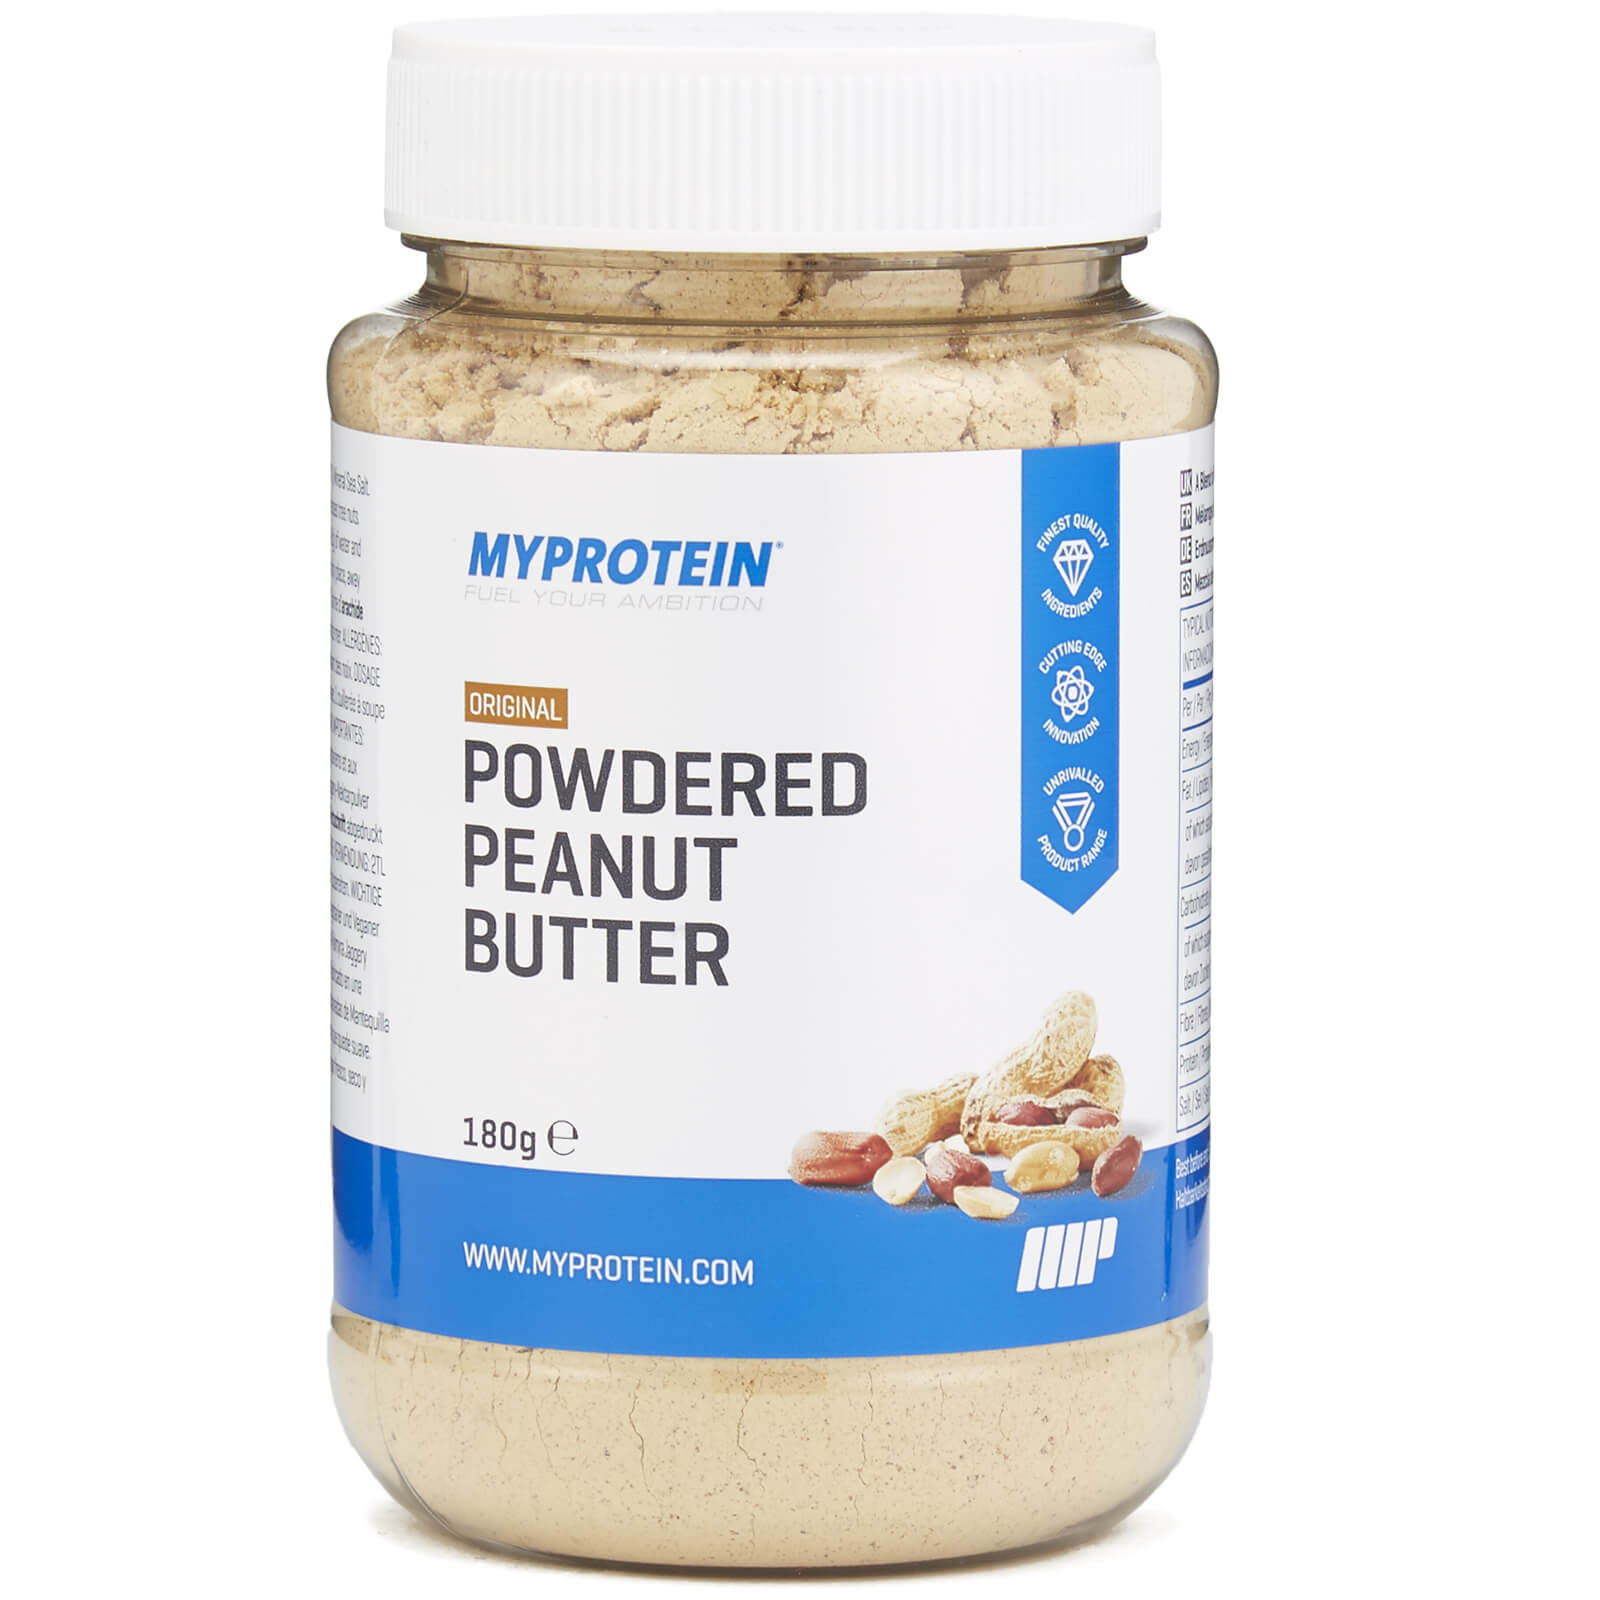 Powdered Peanut Butter - Original - 180g